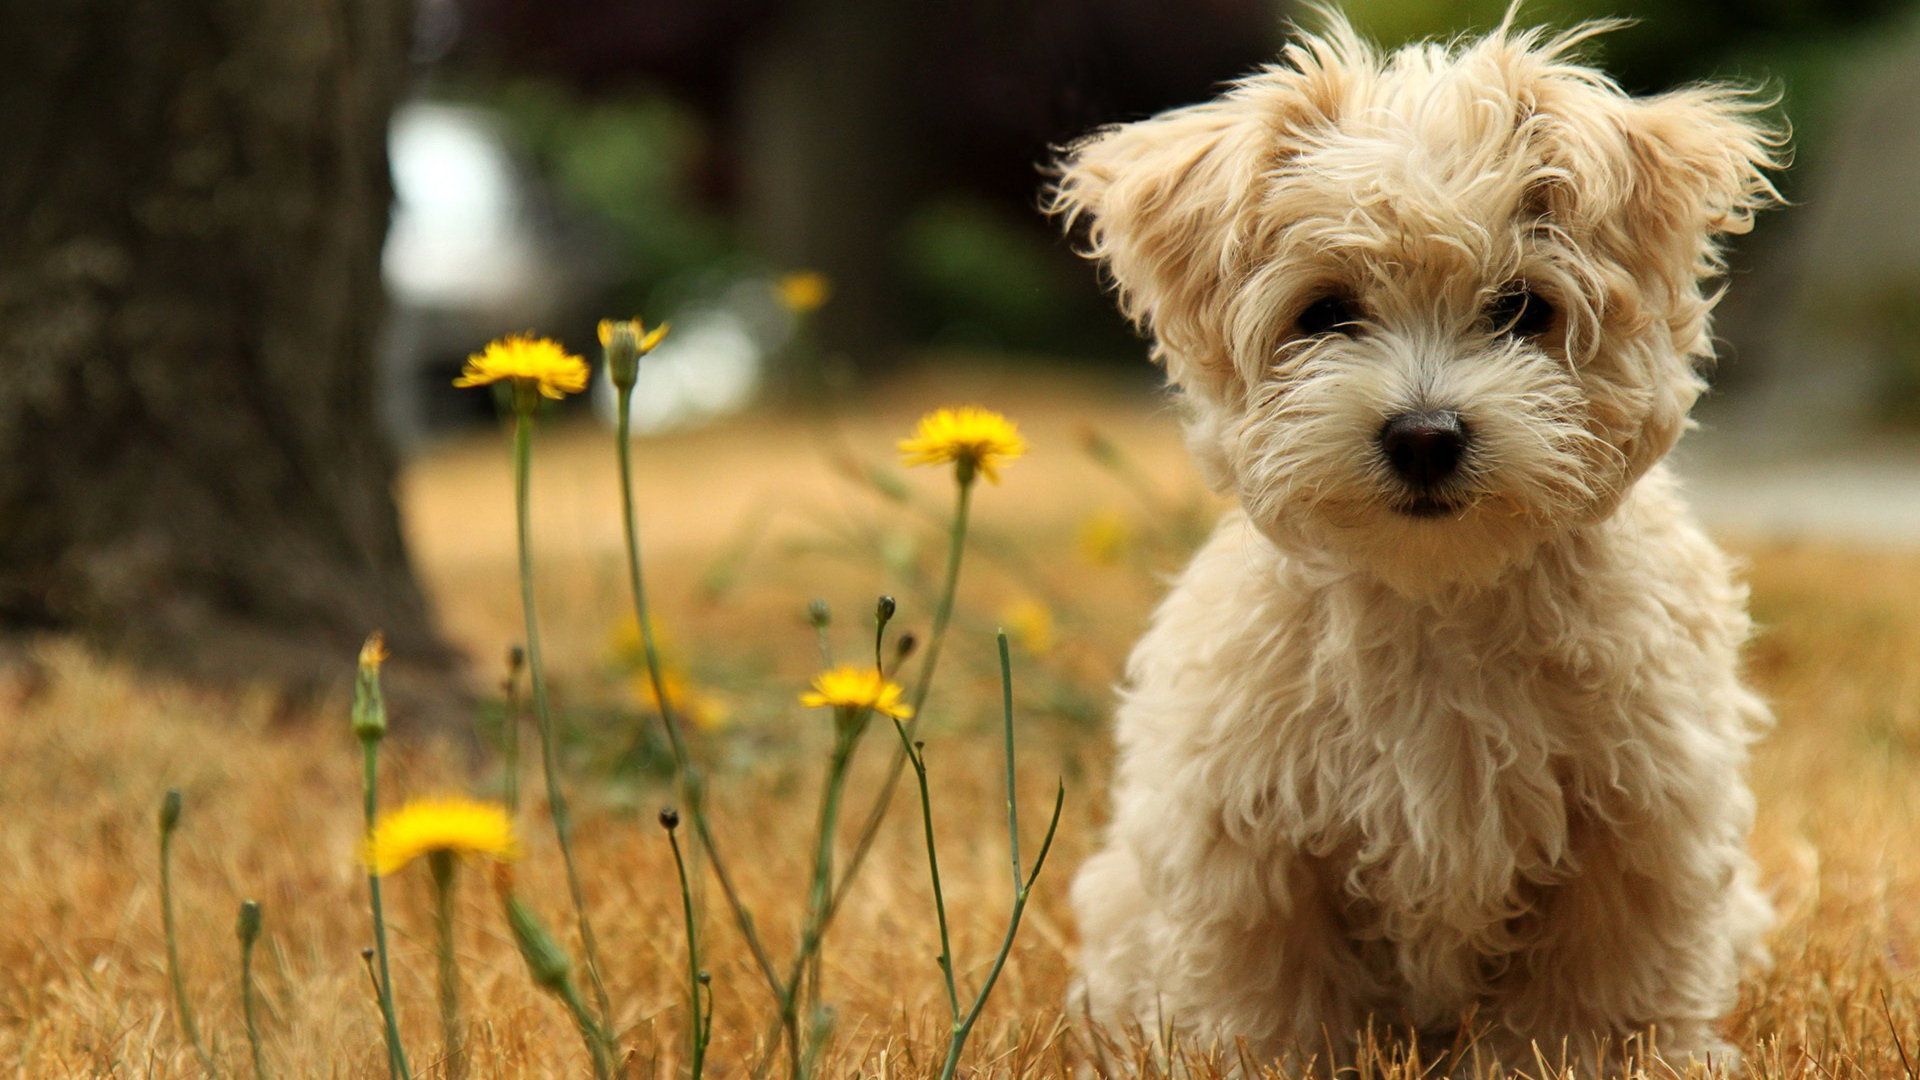 Undefined Nice Laptop Backgrounds 40 Wallpapers Adorable Wallpapers Bear Dog Breed Cute Puppy Wallpaper Teddy Bear Dog